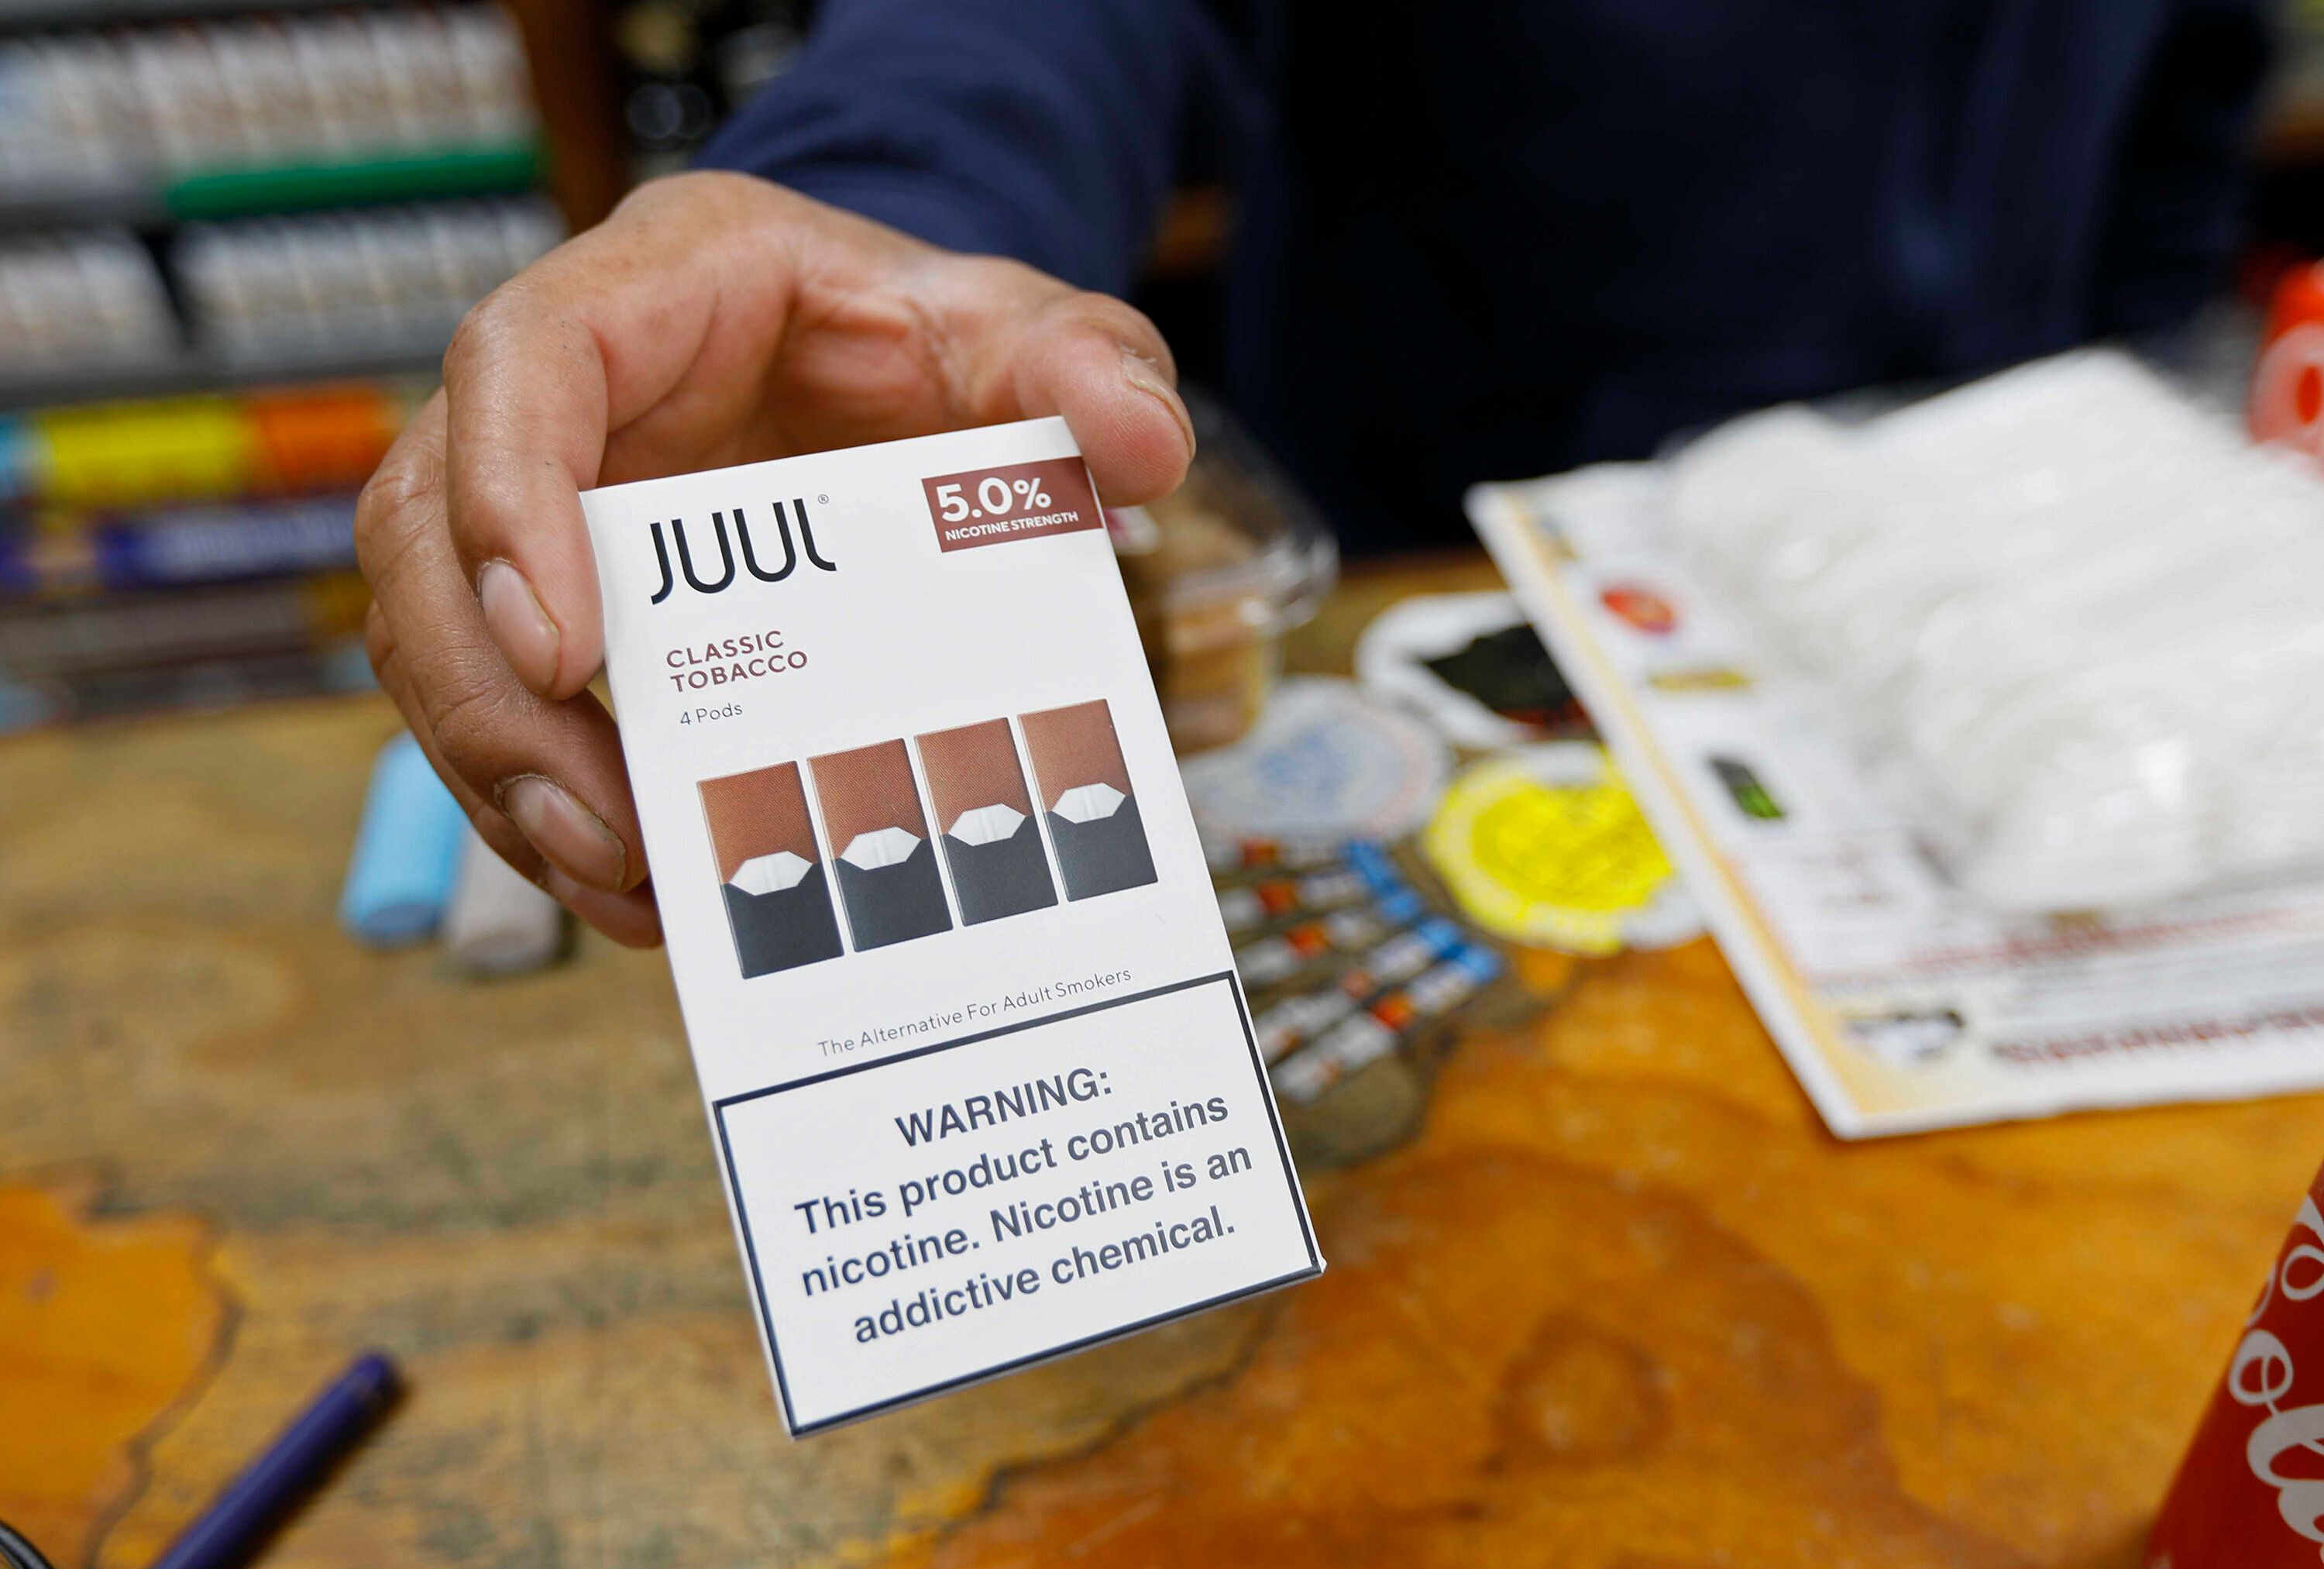 A San Francisco cashier displays a packet of tobacco-flavored Juul pods. San Francisco supervisors voted to ban all sales of